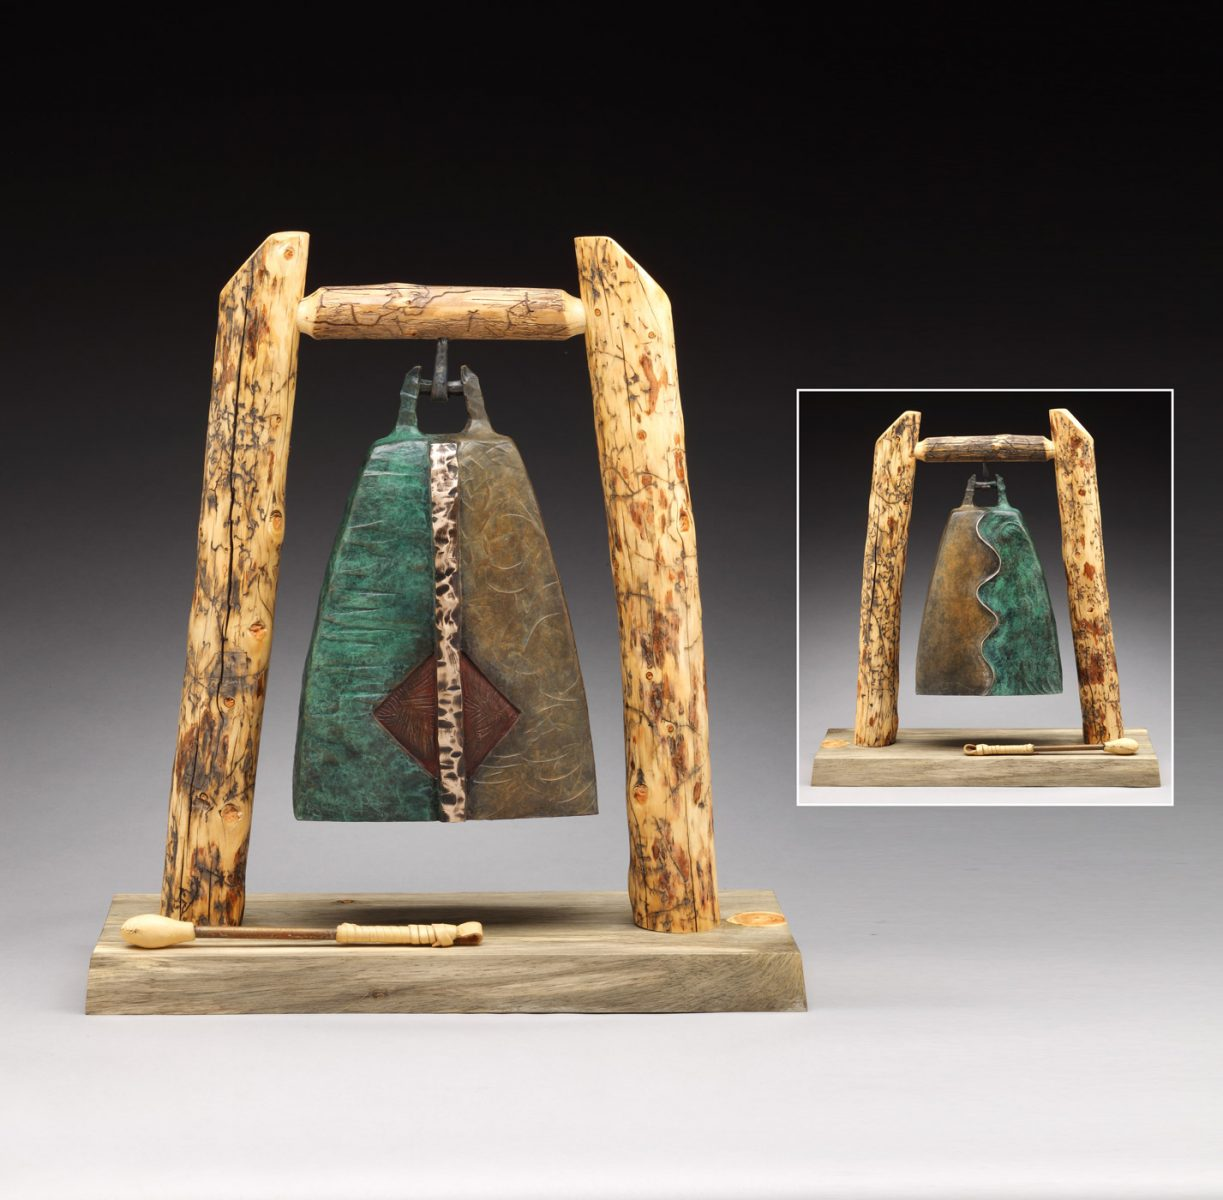 bronze bell tabletop sculpture by JG Moore